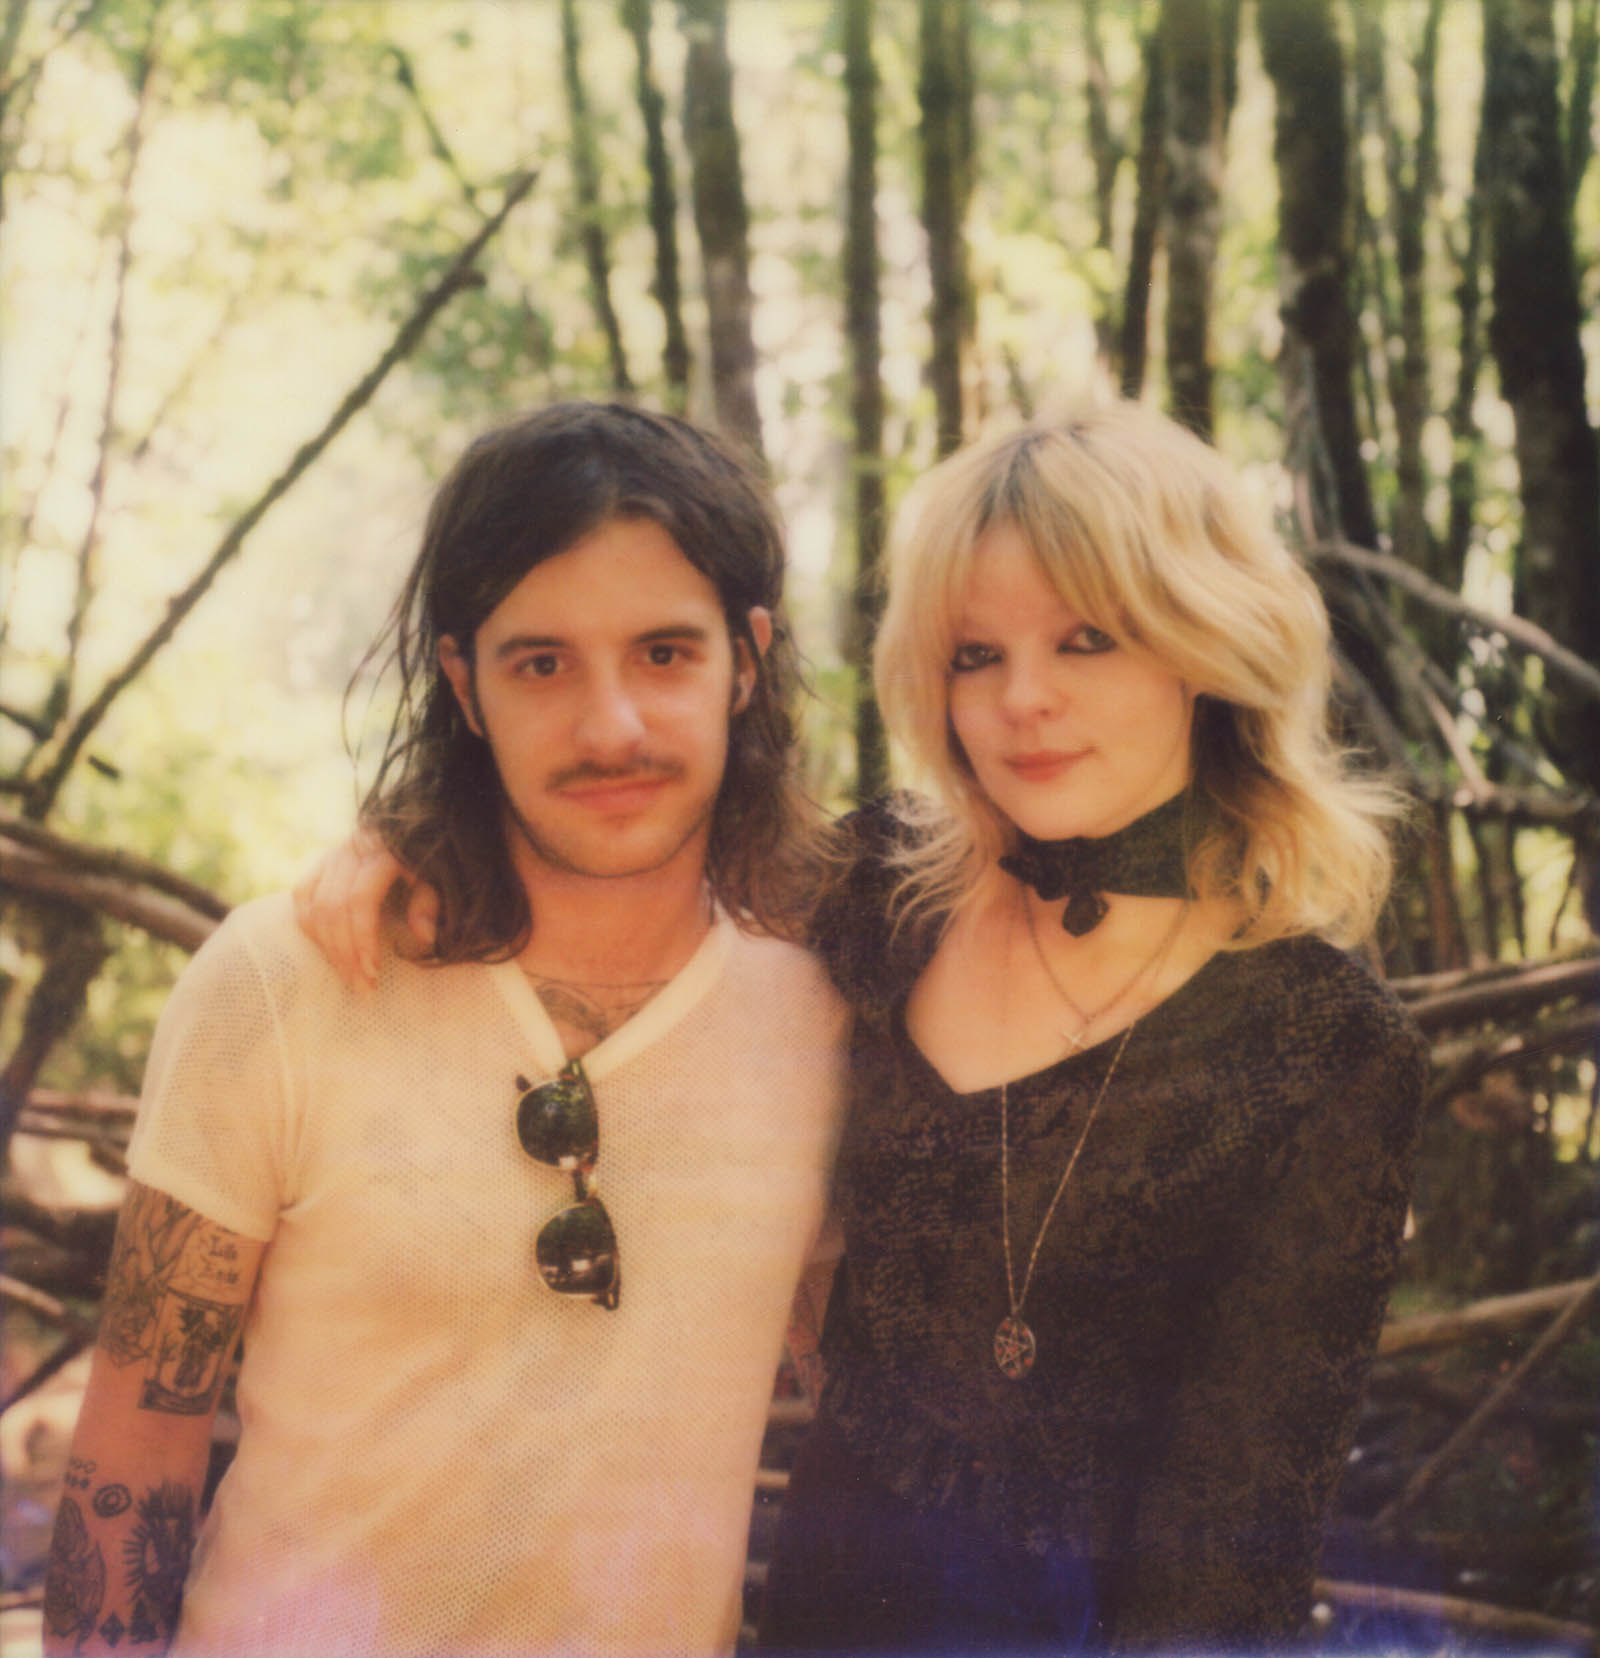 MiNT SLR670m Polaroid Review | Portrait of Jessica Pratt at Pickathon 2015